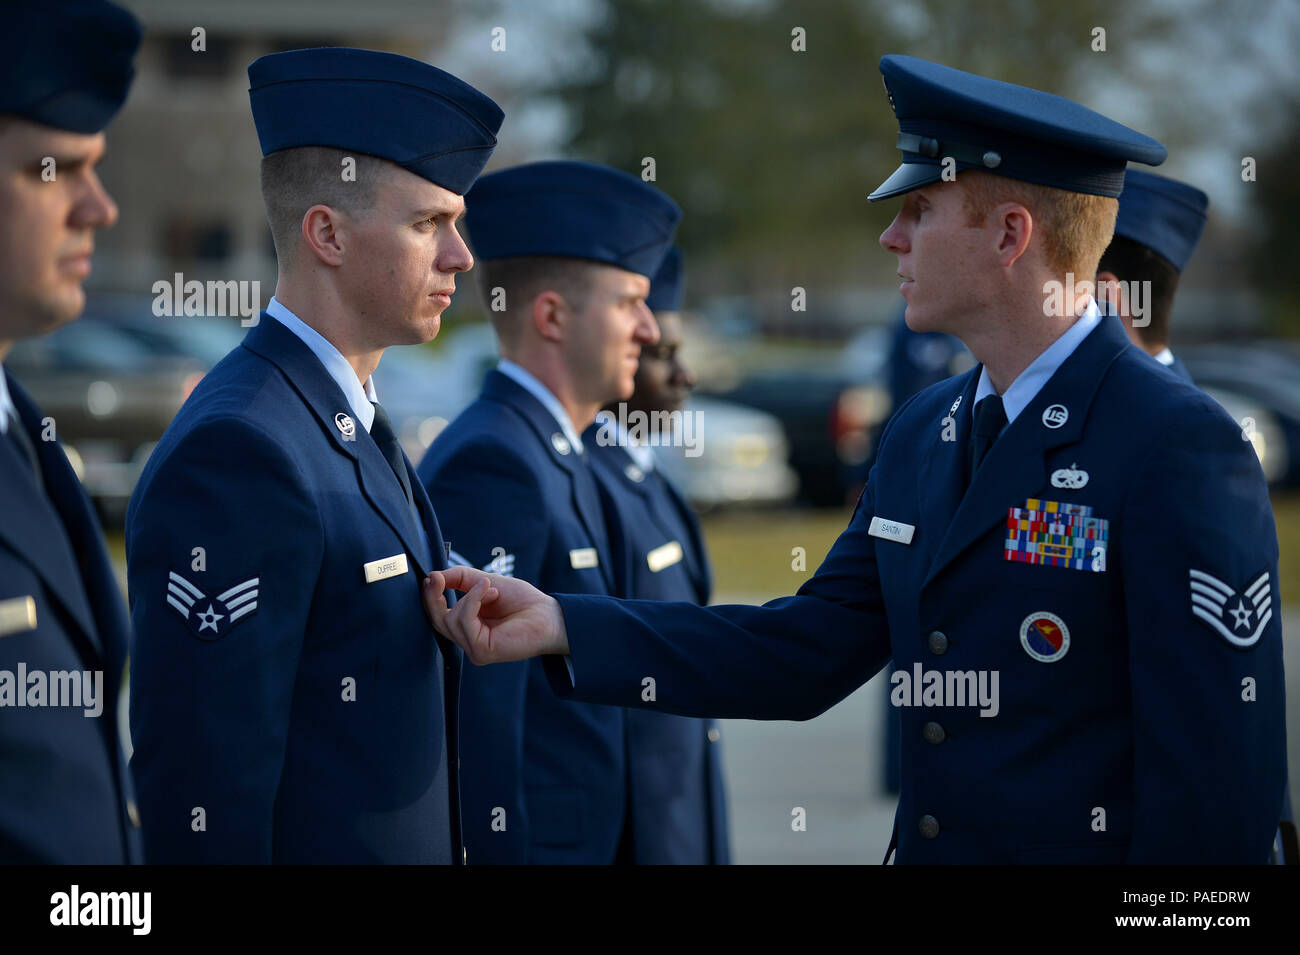 Usaf updates uniform instruction afi 36-2903 soldier systems daily.